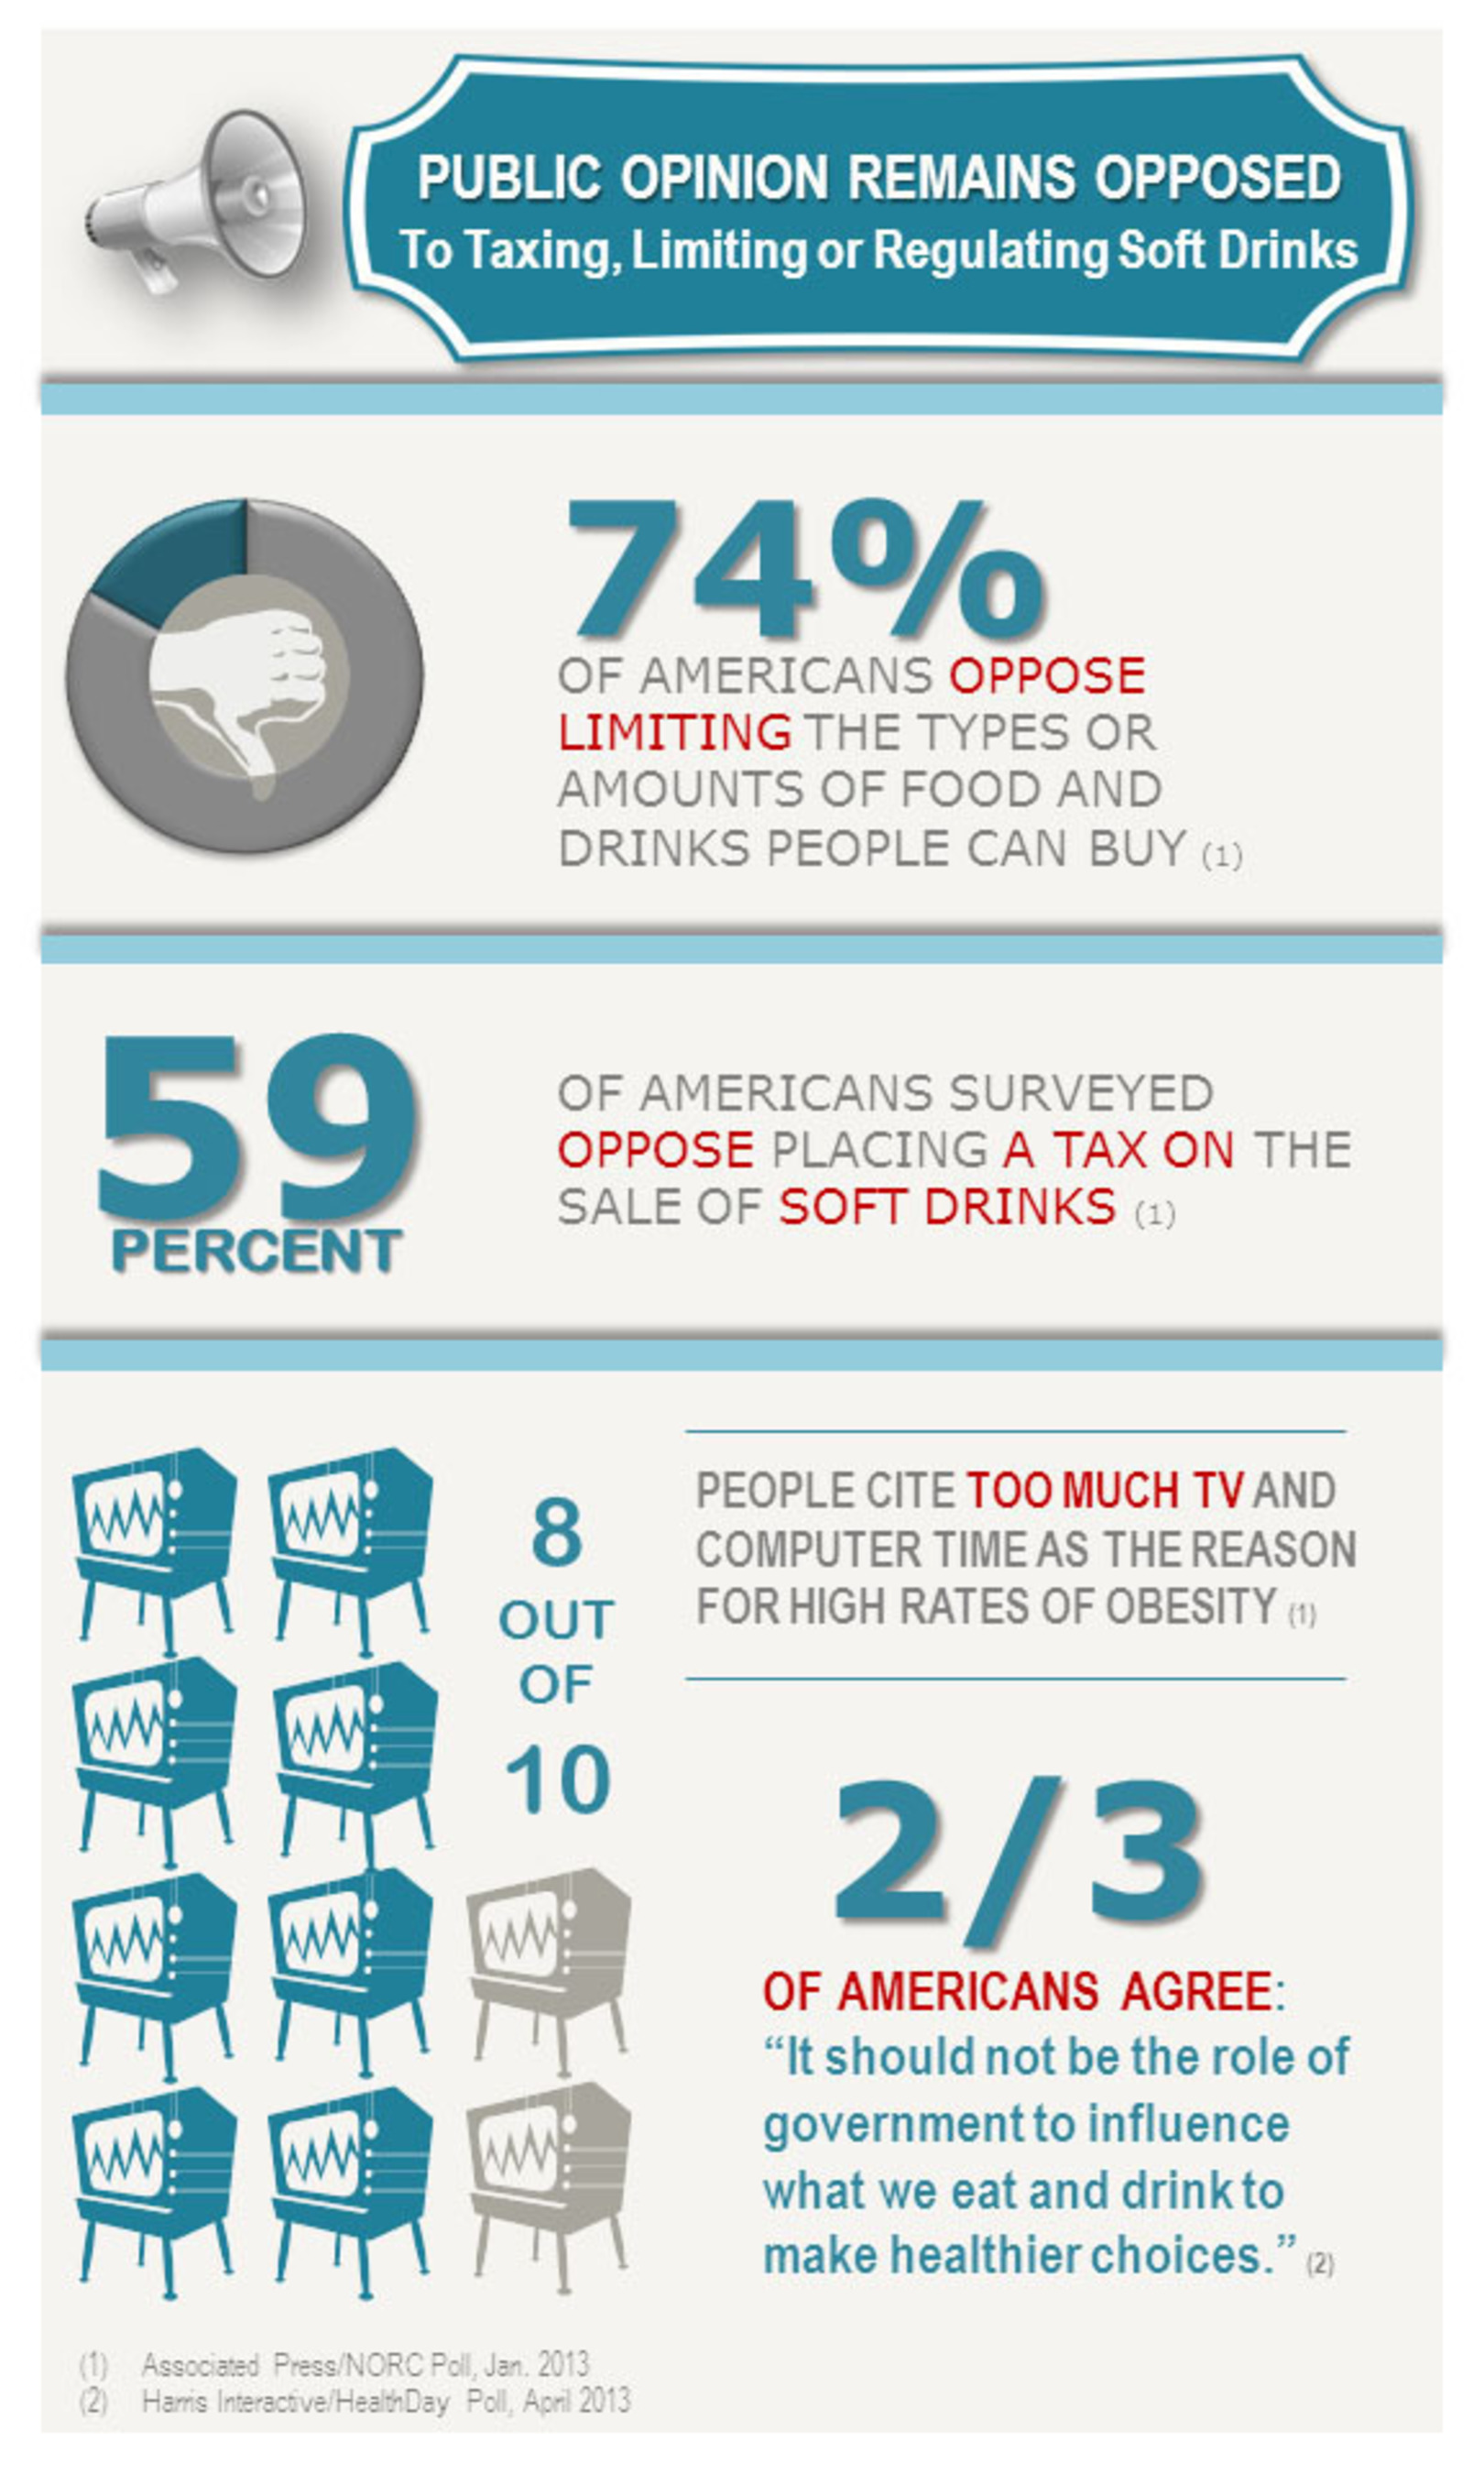 Public Opinion Remains Opposed To Taxing, Limiting Soft Drinks.  (PRNewsFoto/American Beverage Association)